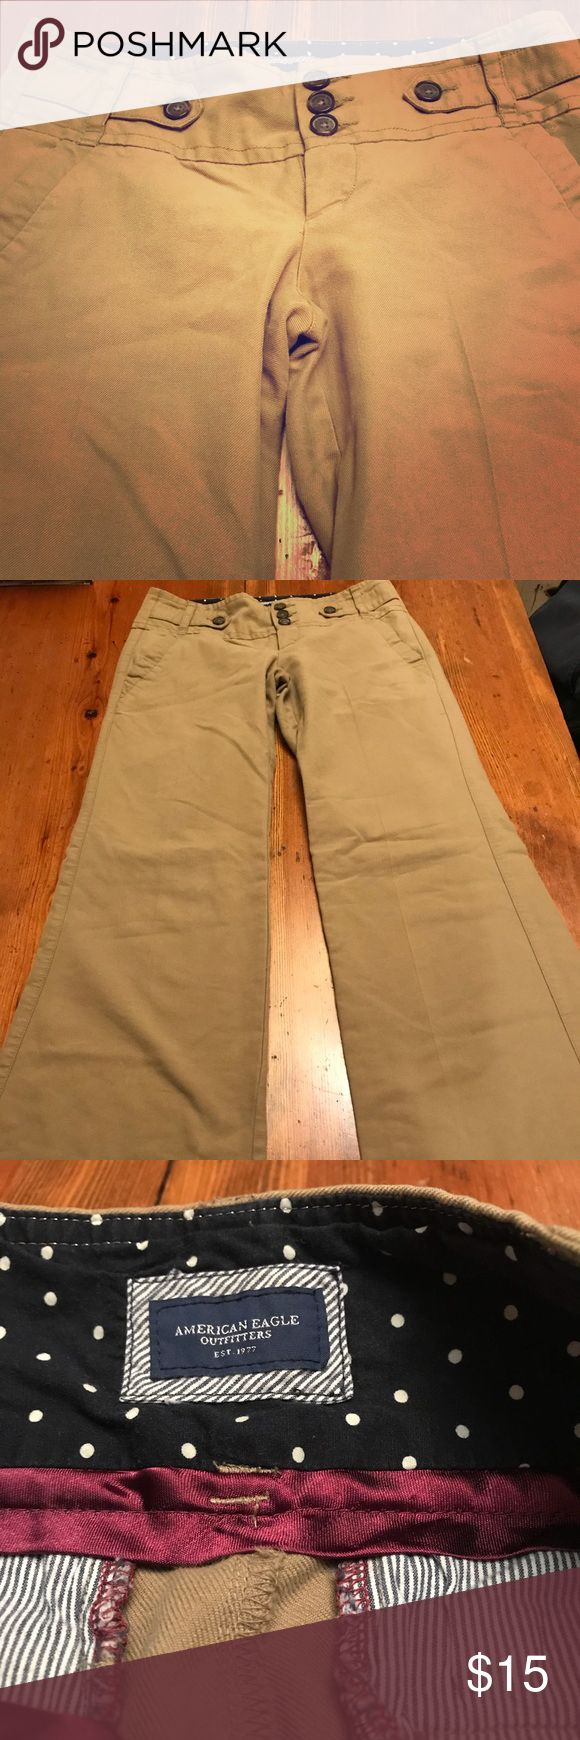 AE khakis!!! These are med color khaki and materials as pictured!! Cute pair! Low cut and flare/trouser!! Good condition! Make offer or bundle and save! American Eagle Outfitters Pants Boot Cut & Flare